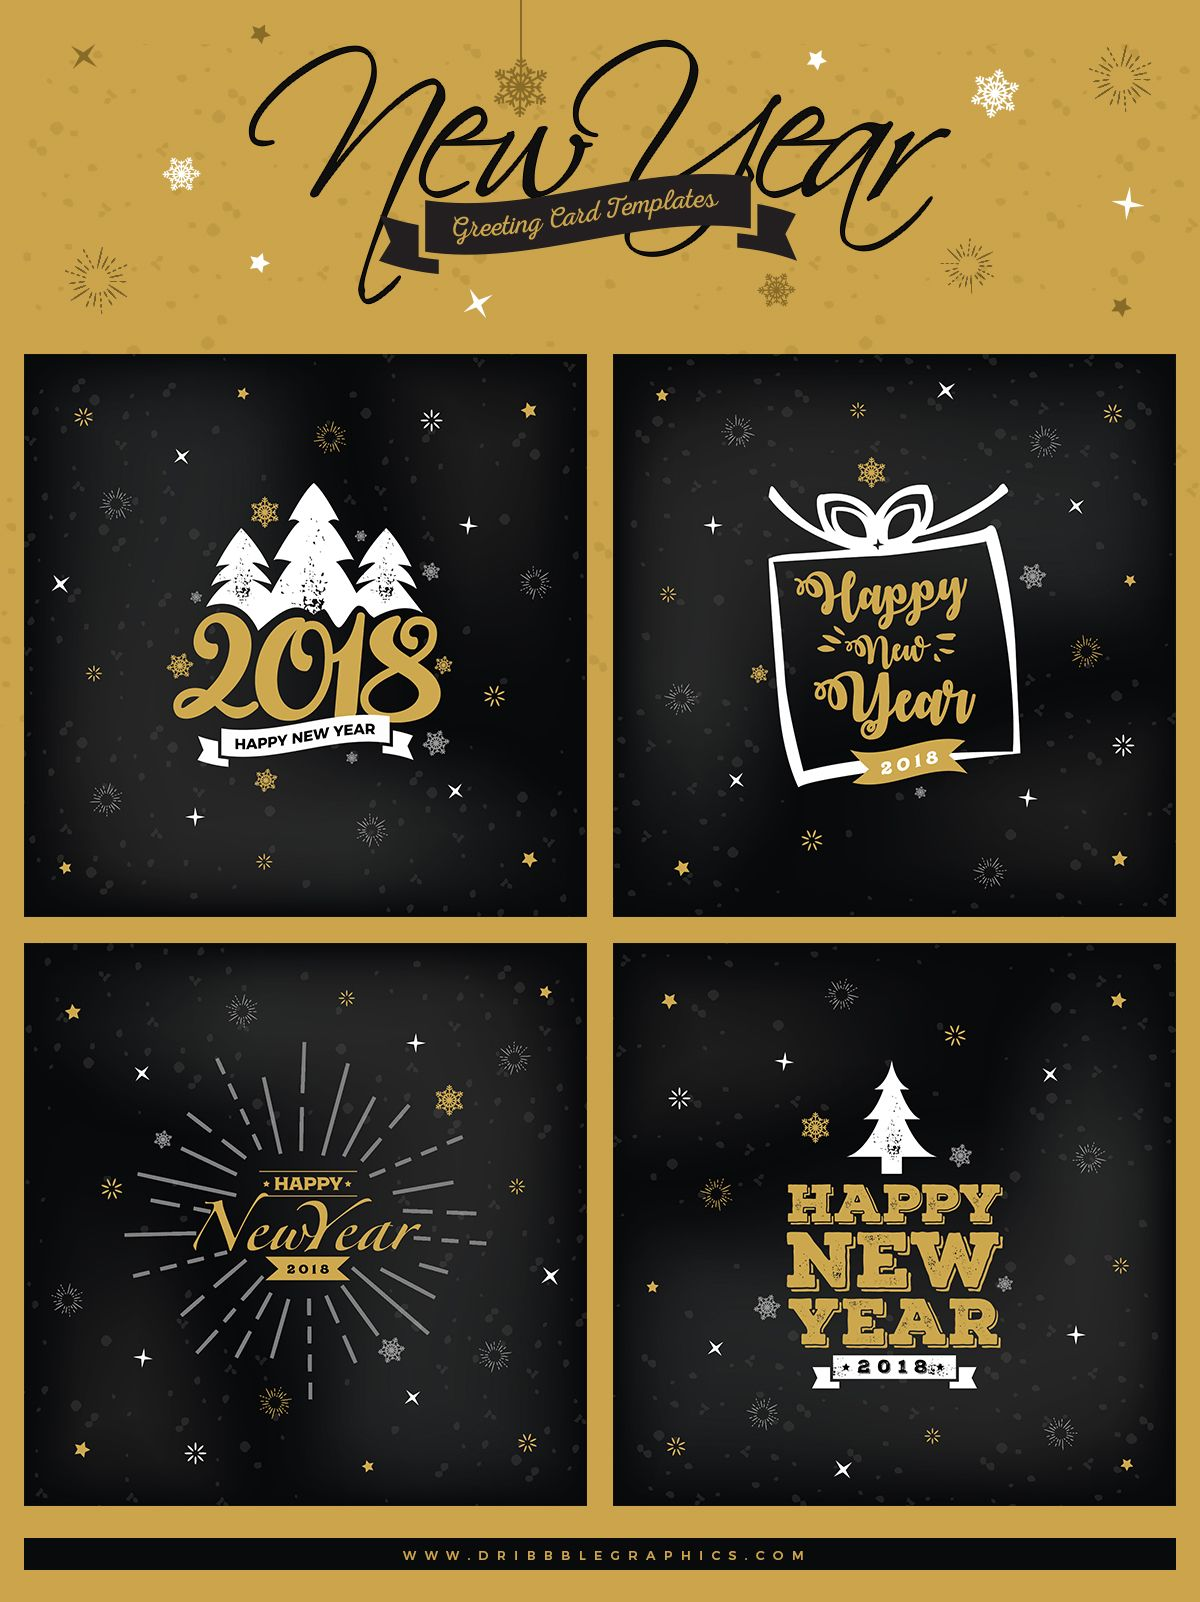 4 Free New Year Greeting Card Templates Greeting Card Template New Year Greeting Cards Holiday Card Template